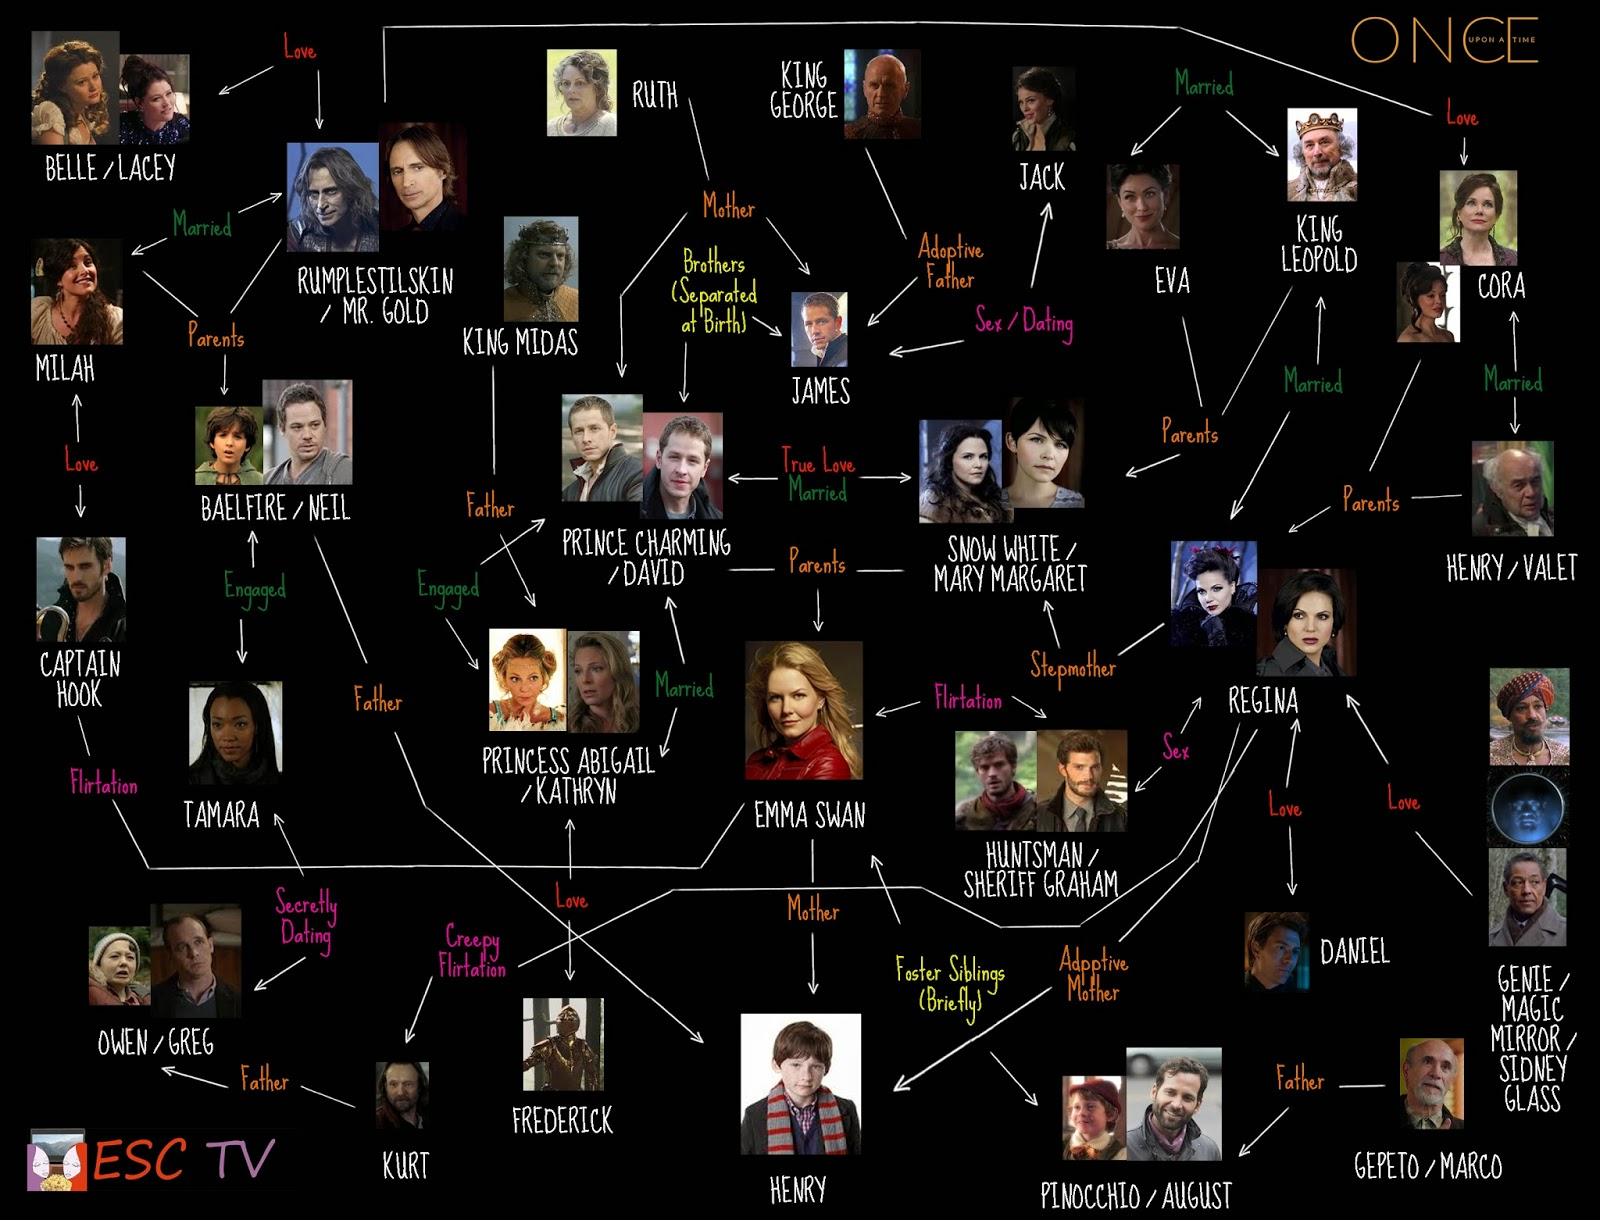 ESC TV: Once Upon a Time: Fucked Up Family Tree